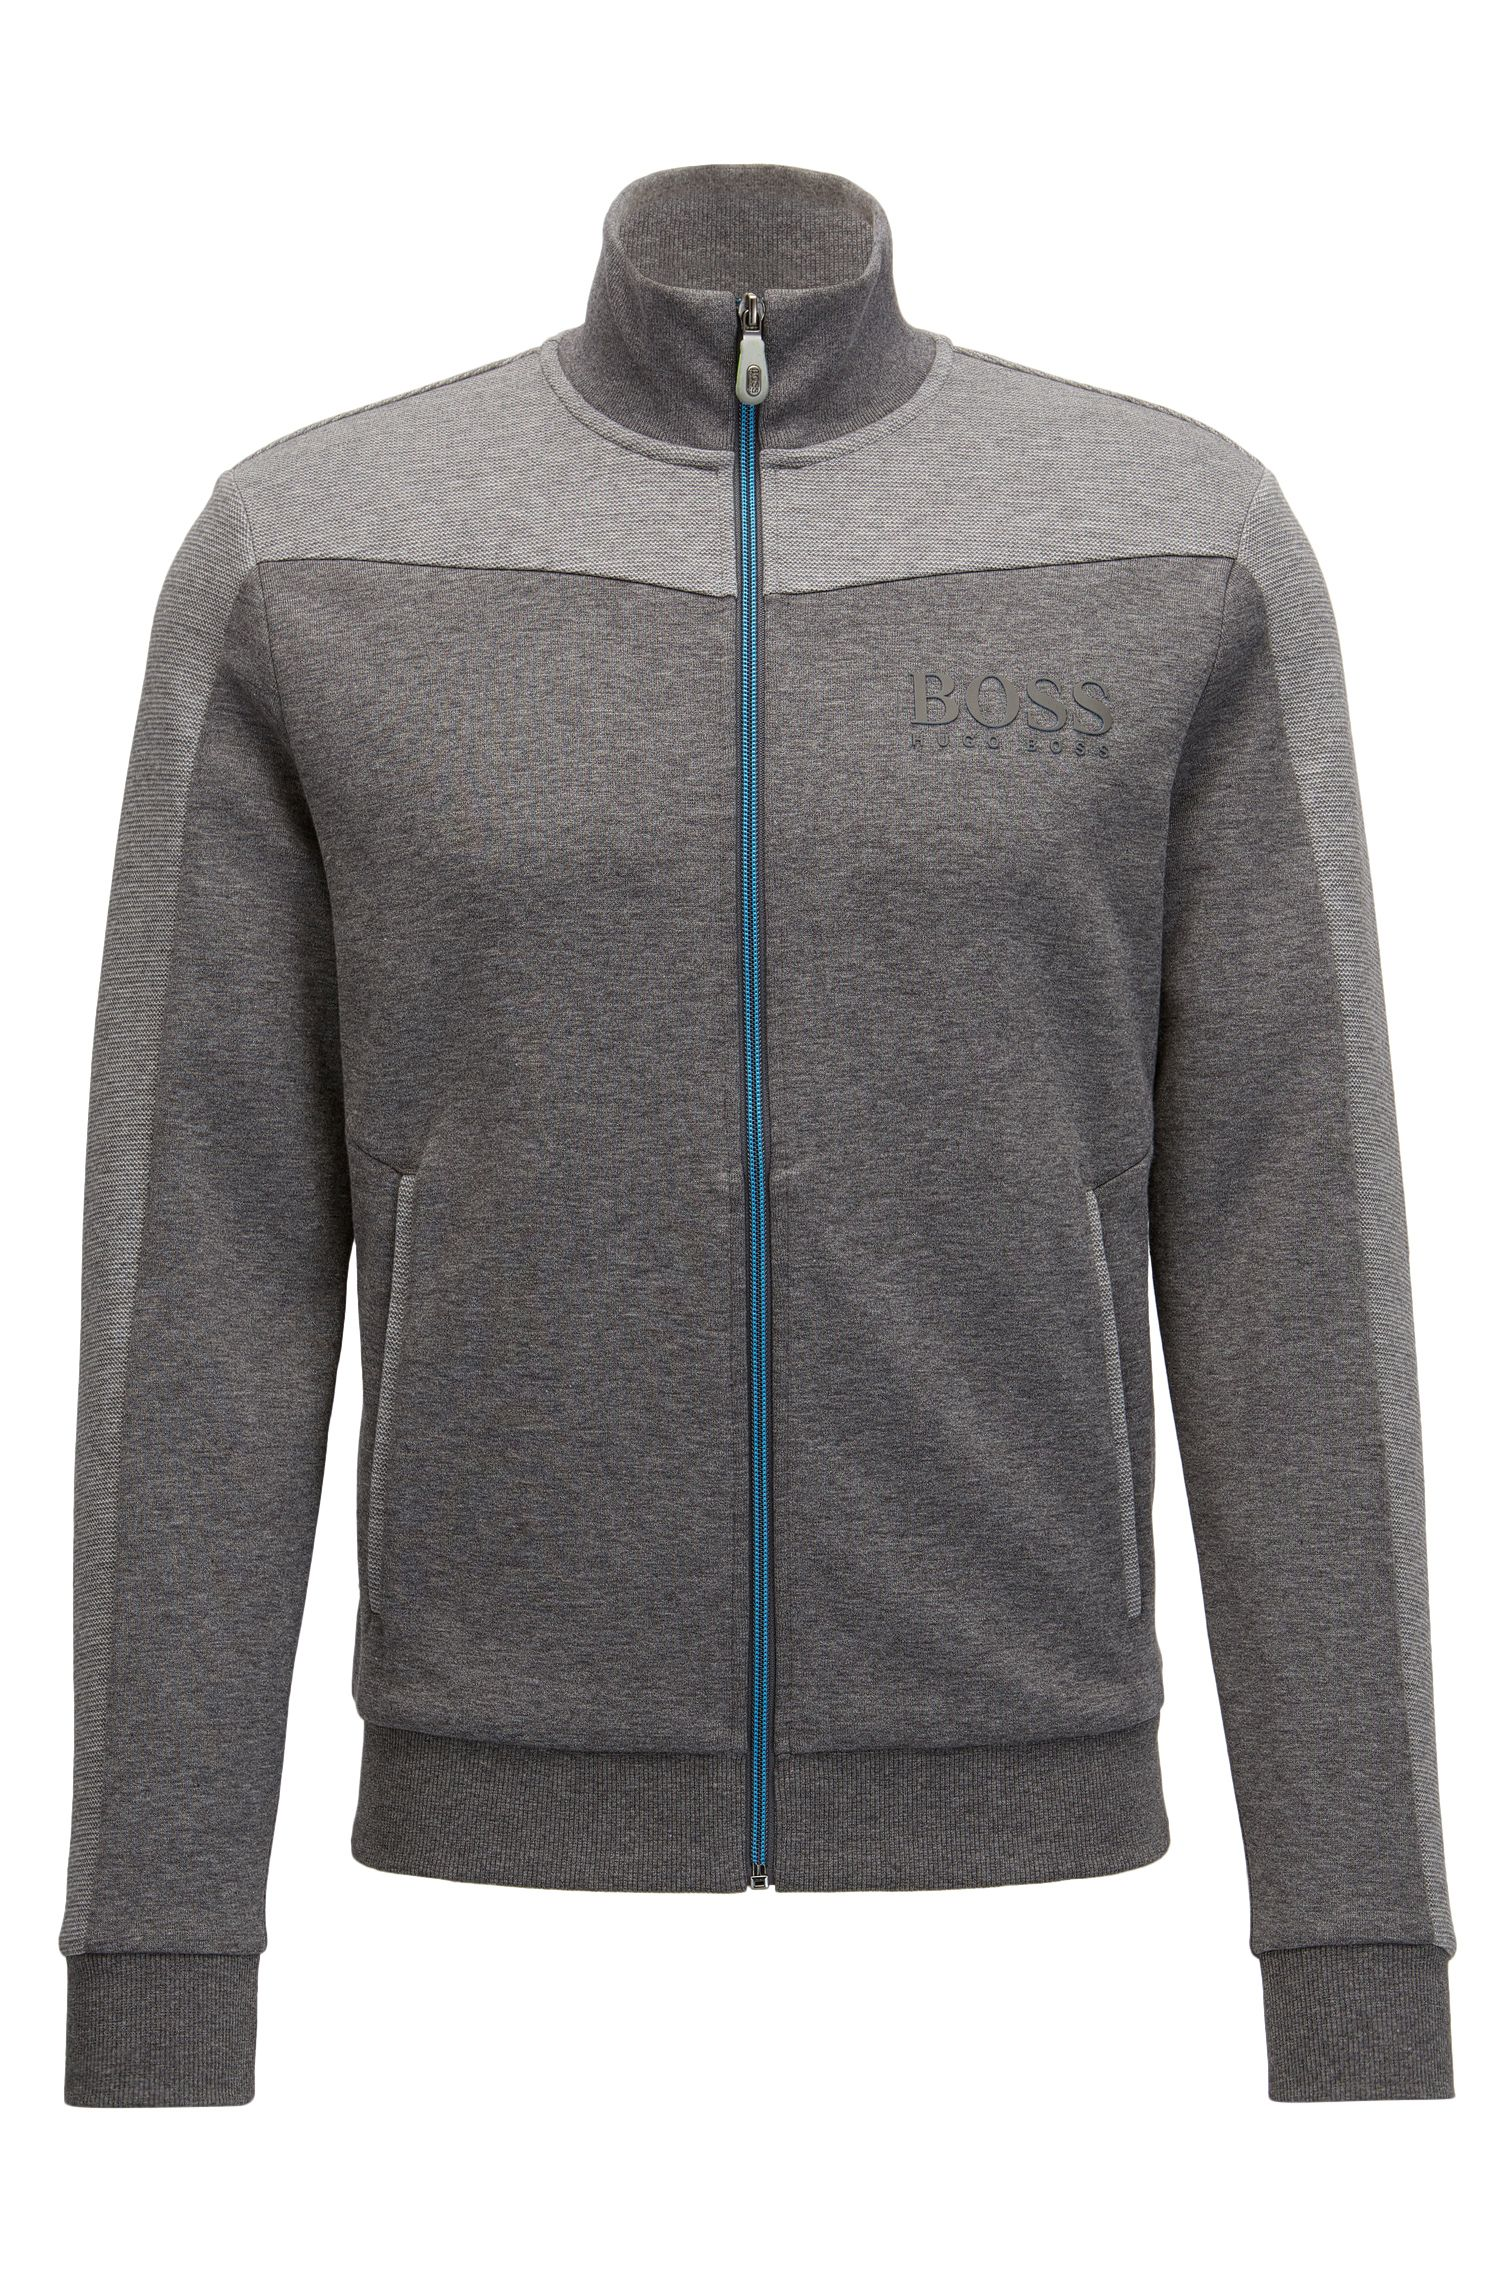 Cotton Blend Full-Zip Jacket | Skaz